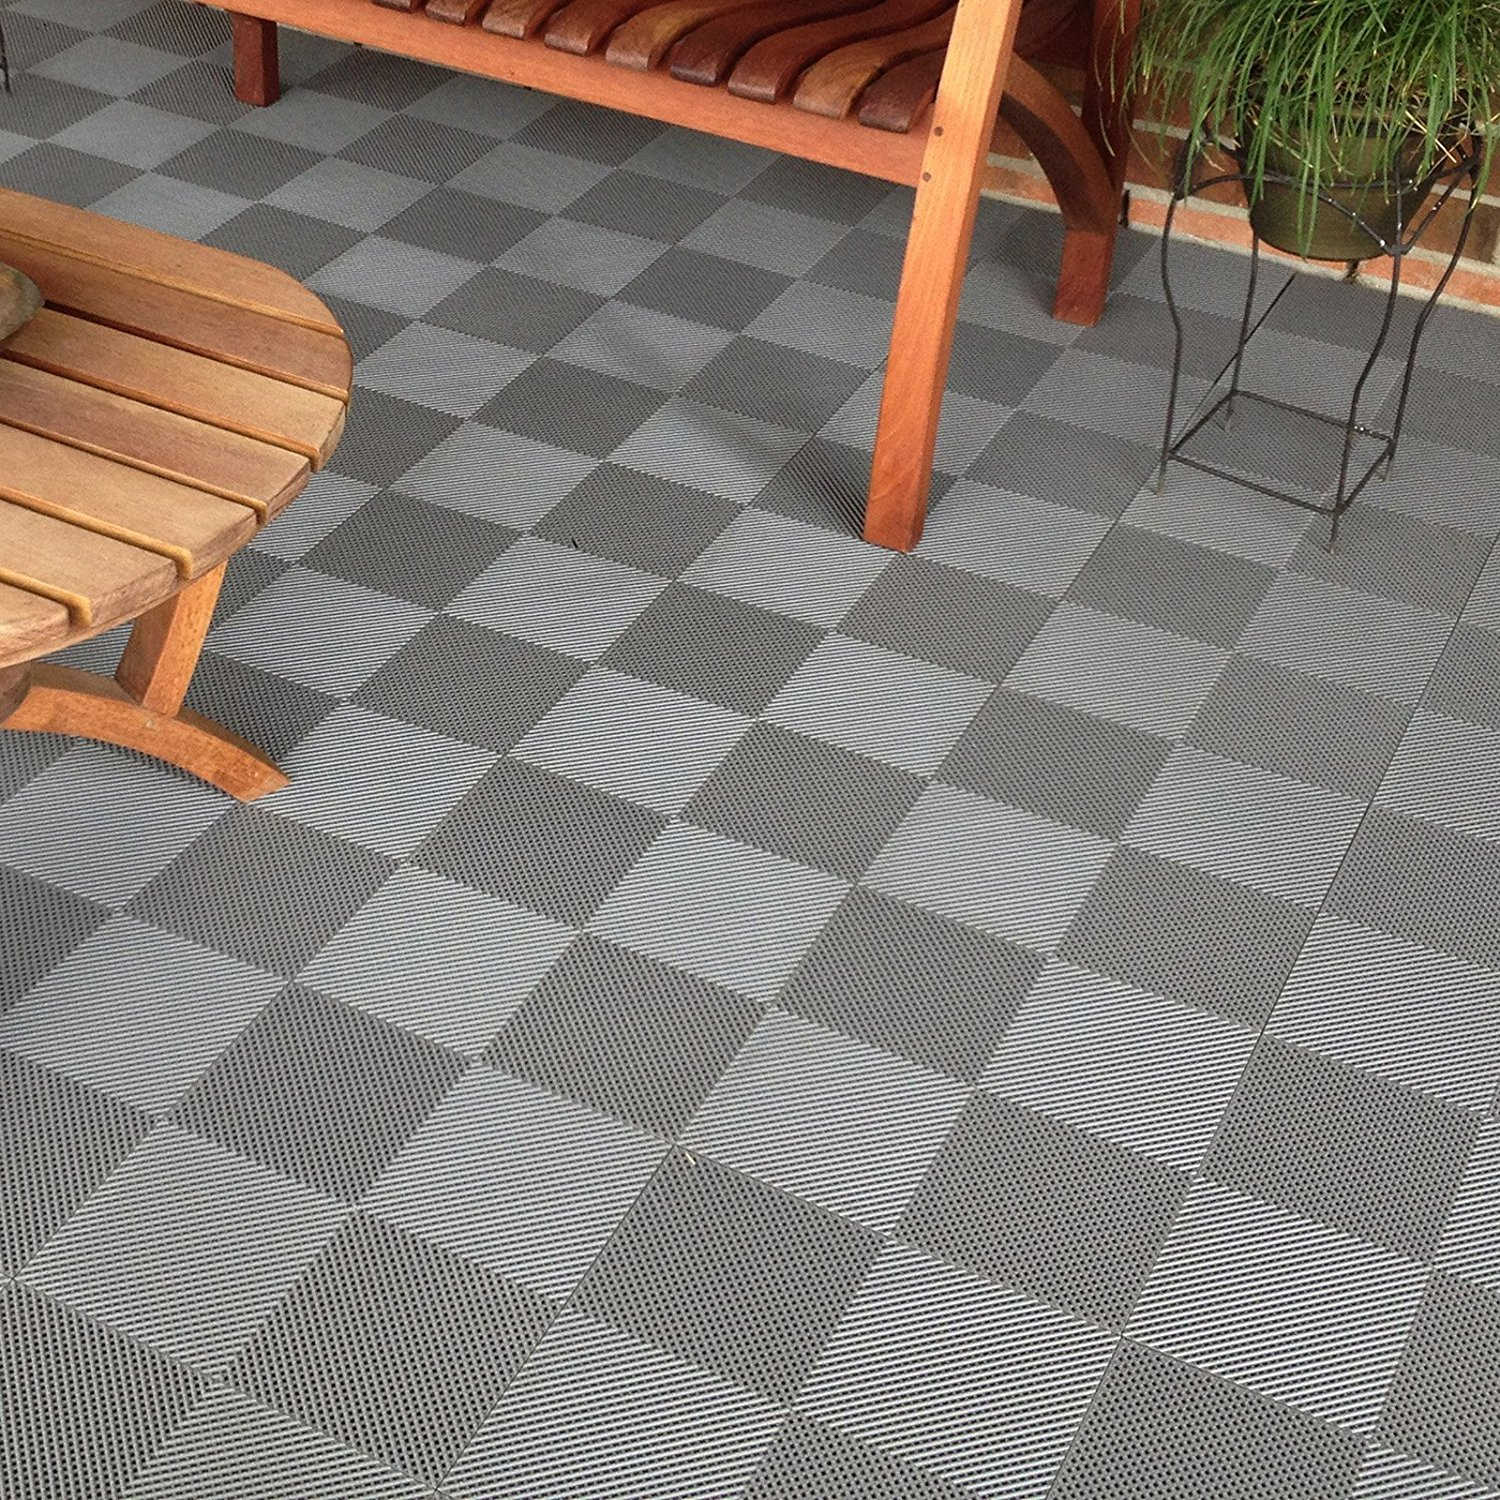 Outdoor tiles the tile home guide outdoor tiles baanklon Images